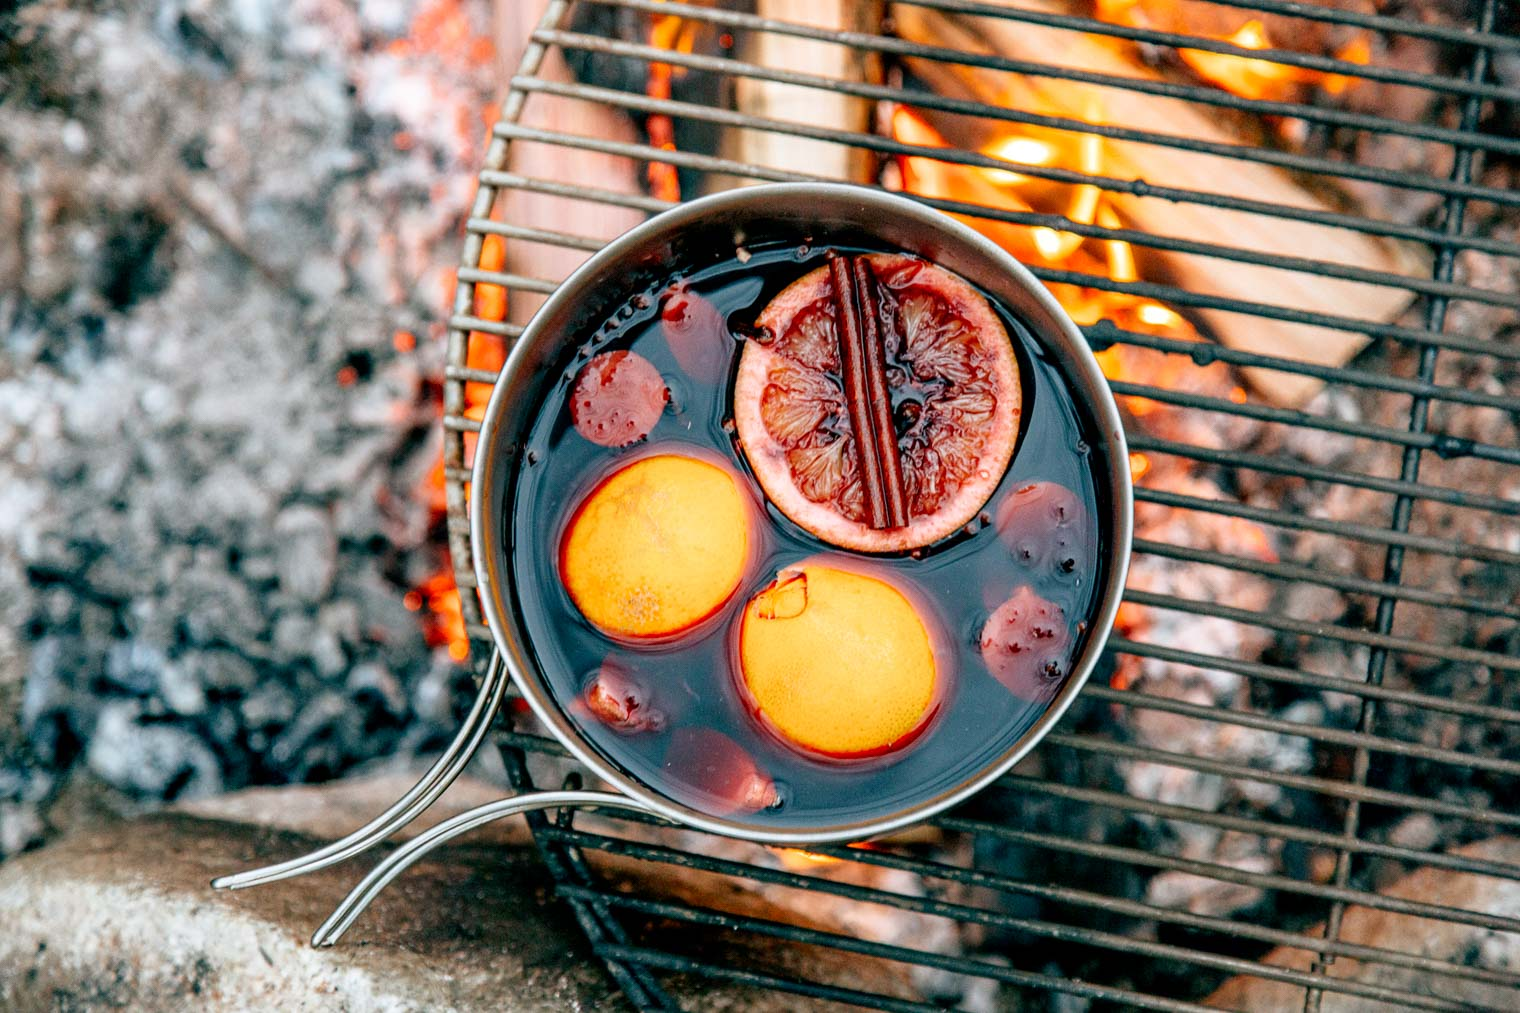 A pot of mold wine with oranges and cinnamon sticks sitting on a campfire